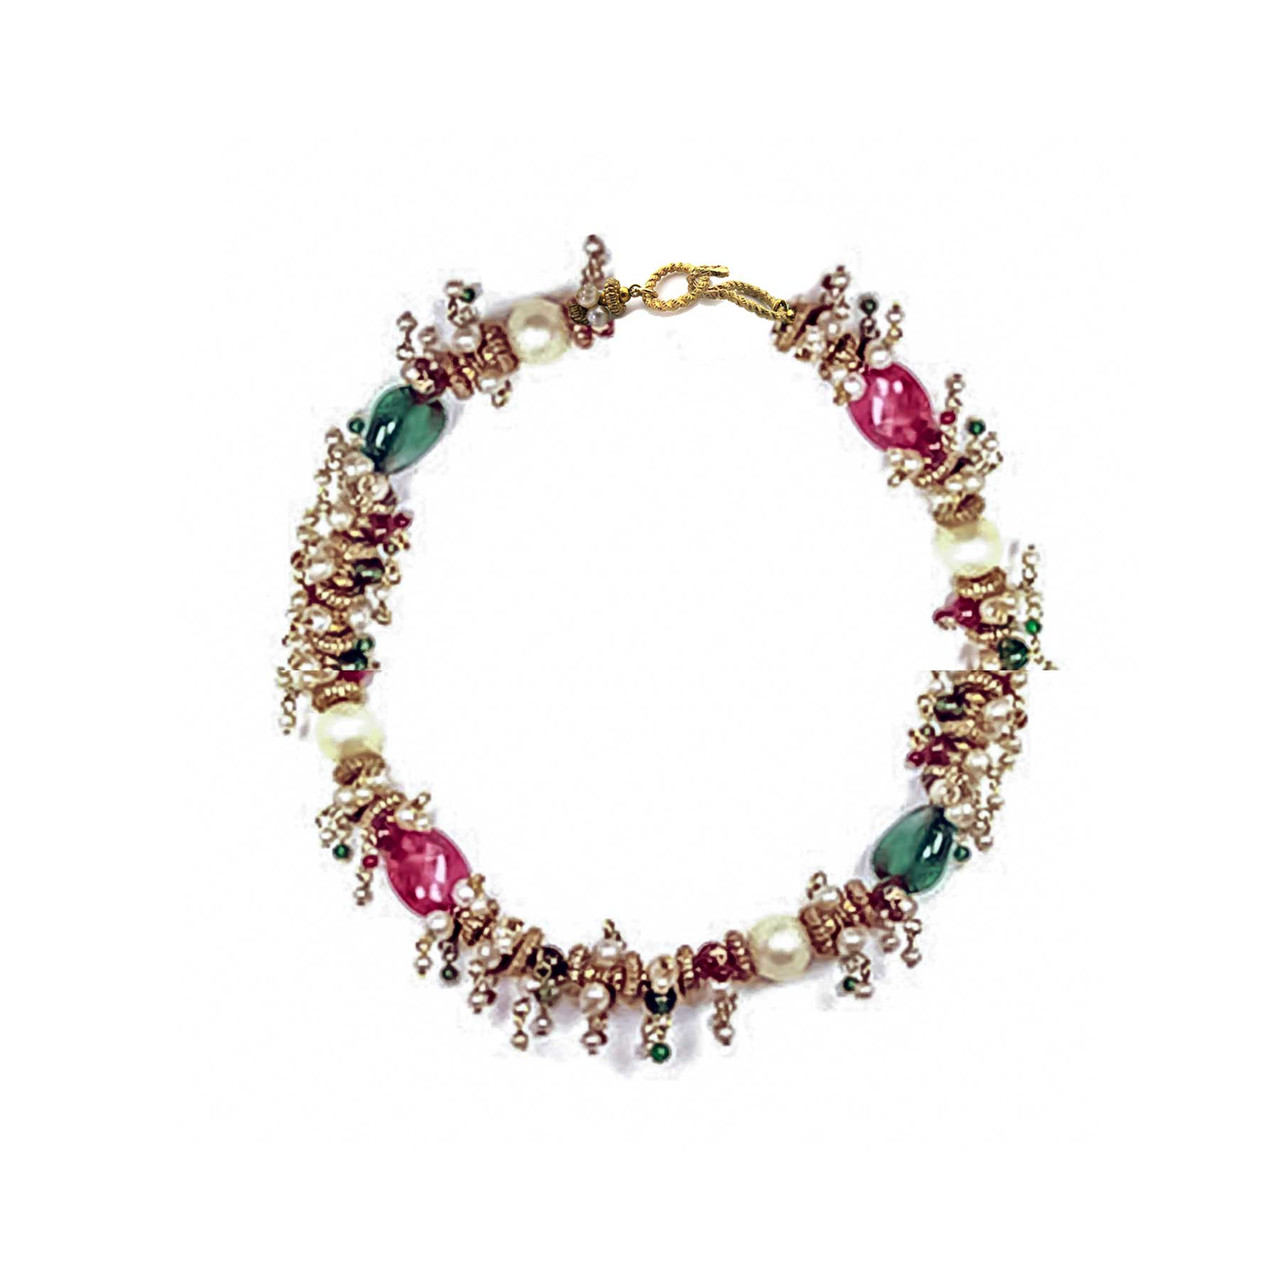 Chanel Jewelry   Designer Consignment Online